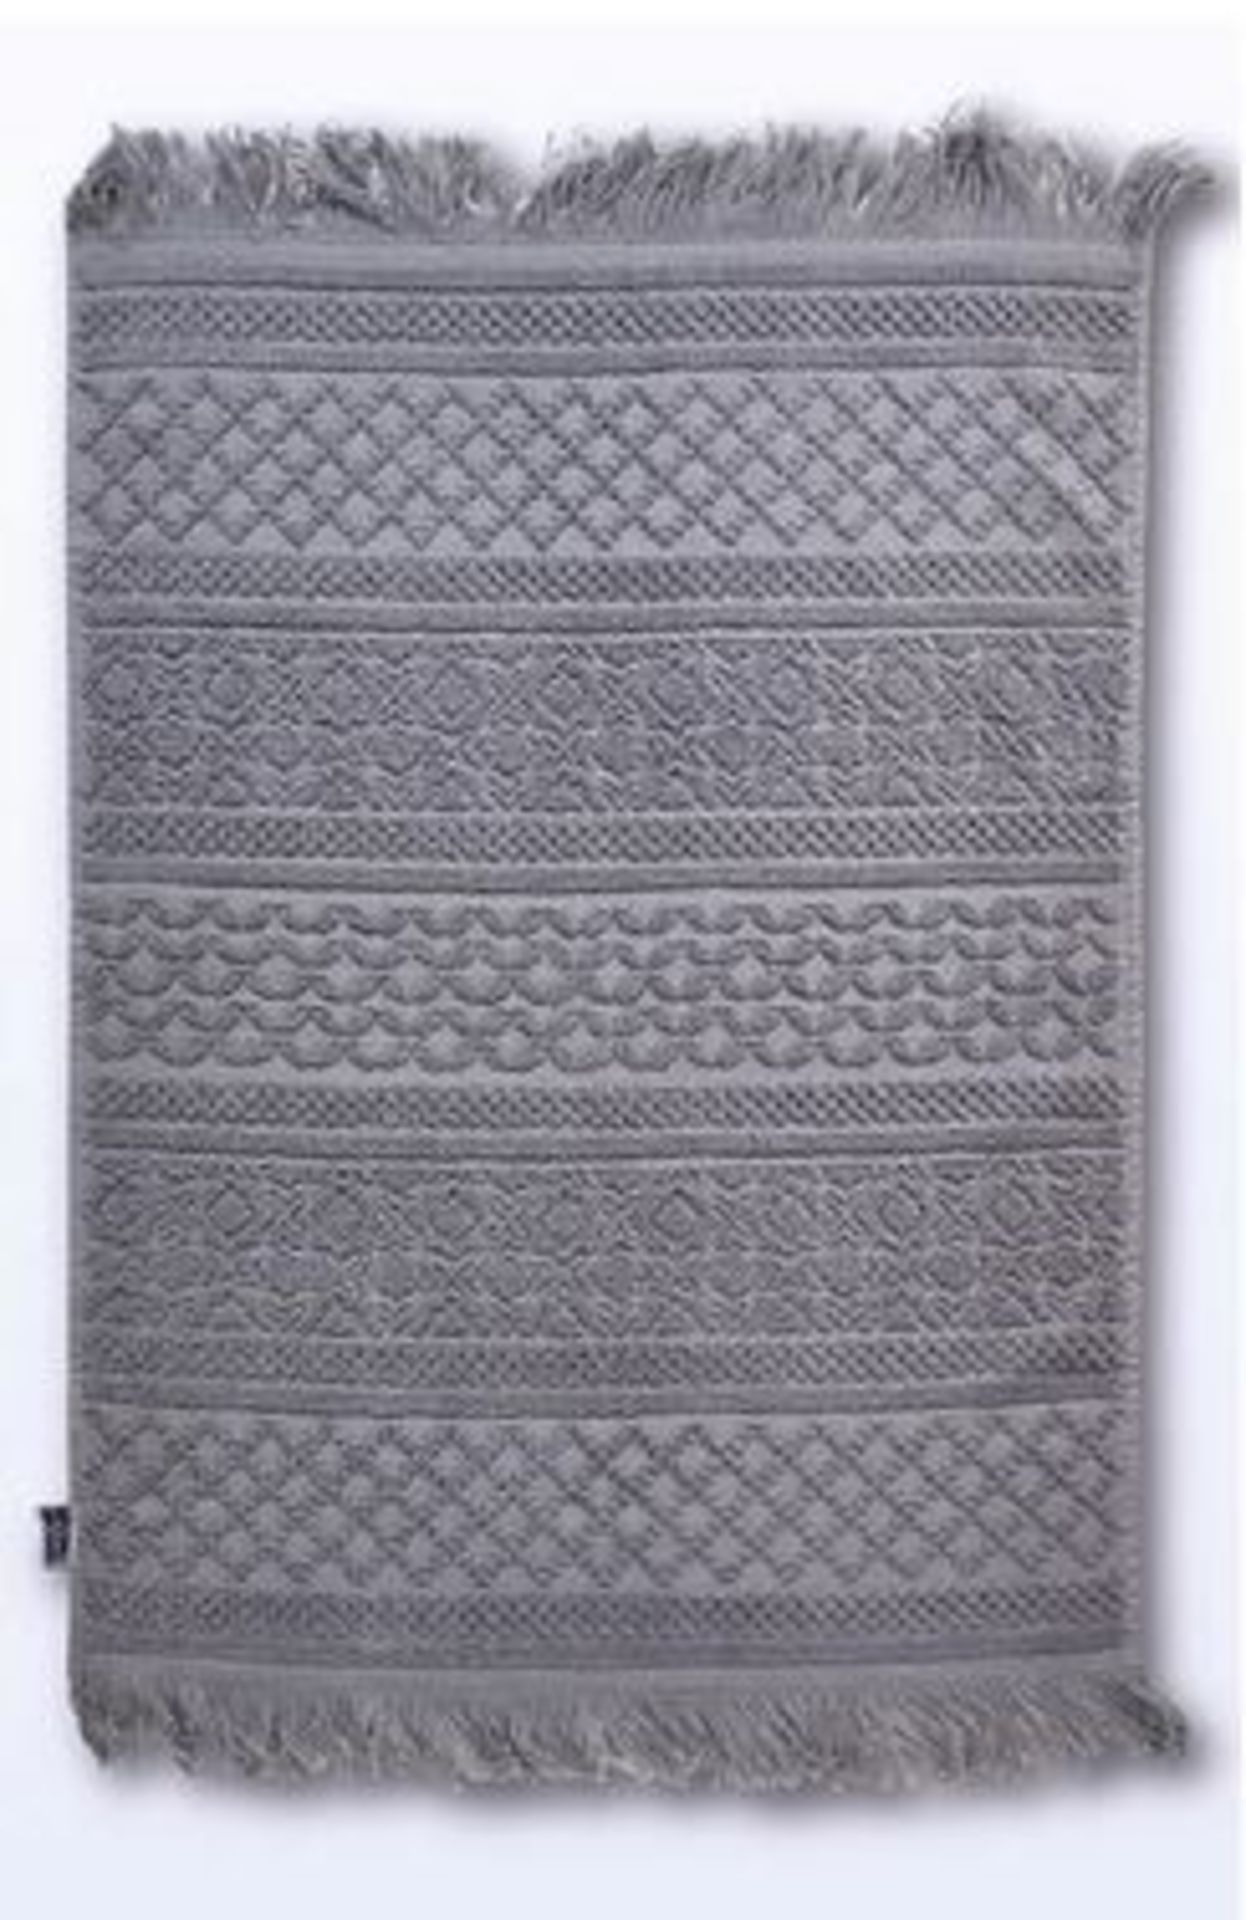 Lot 177 - 1 BAGGED DOBBY JACQUARD TOWEL MAT IN GREY (PUBLIC VIEWING AVAILABLE)